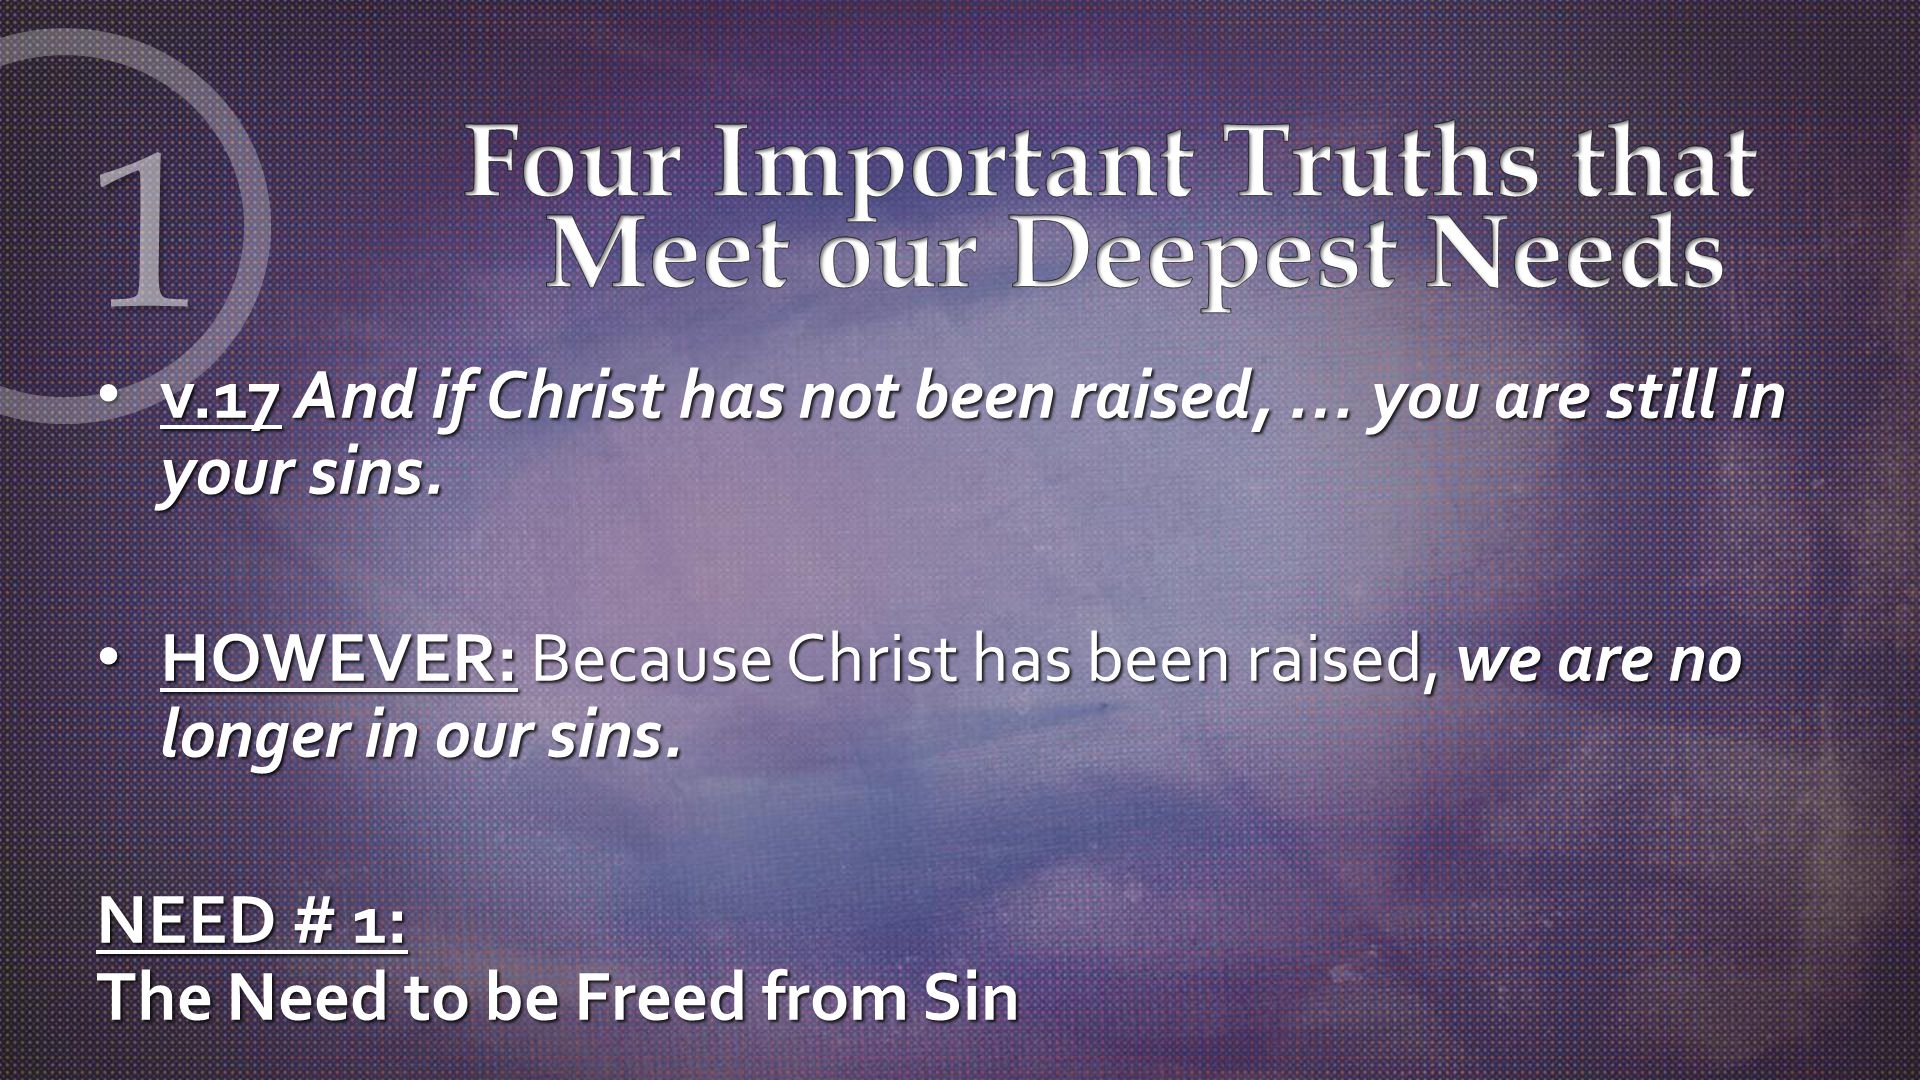 v.17 And if Christ has not been raised, … you are still in your sins.